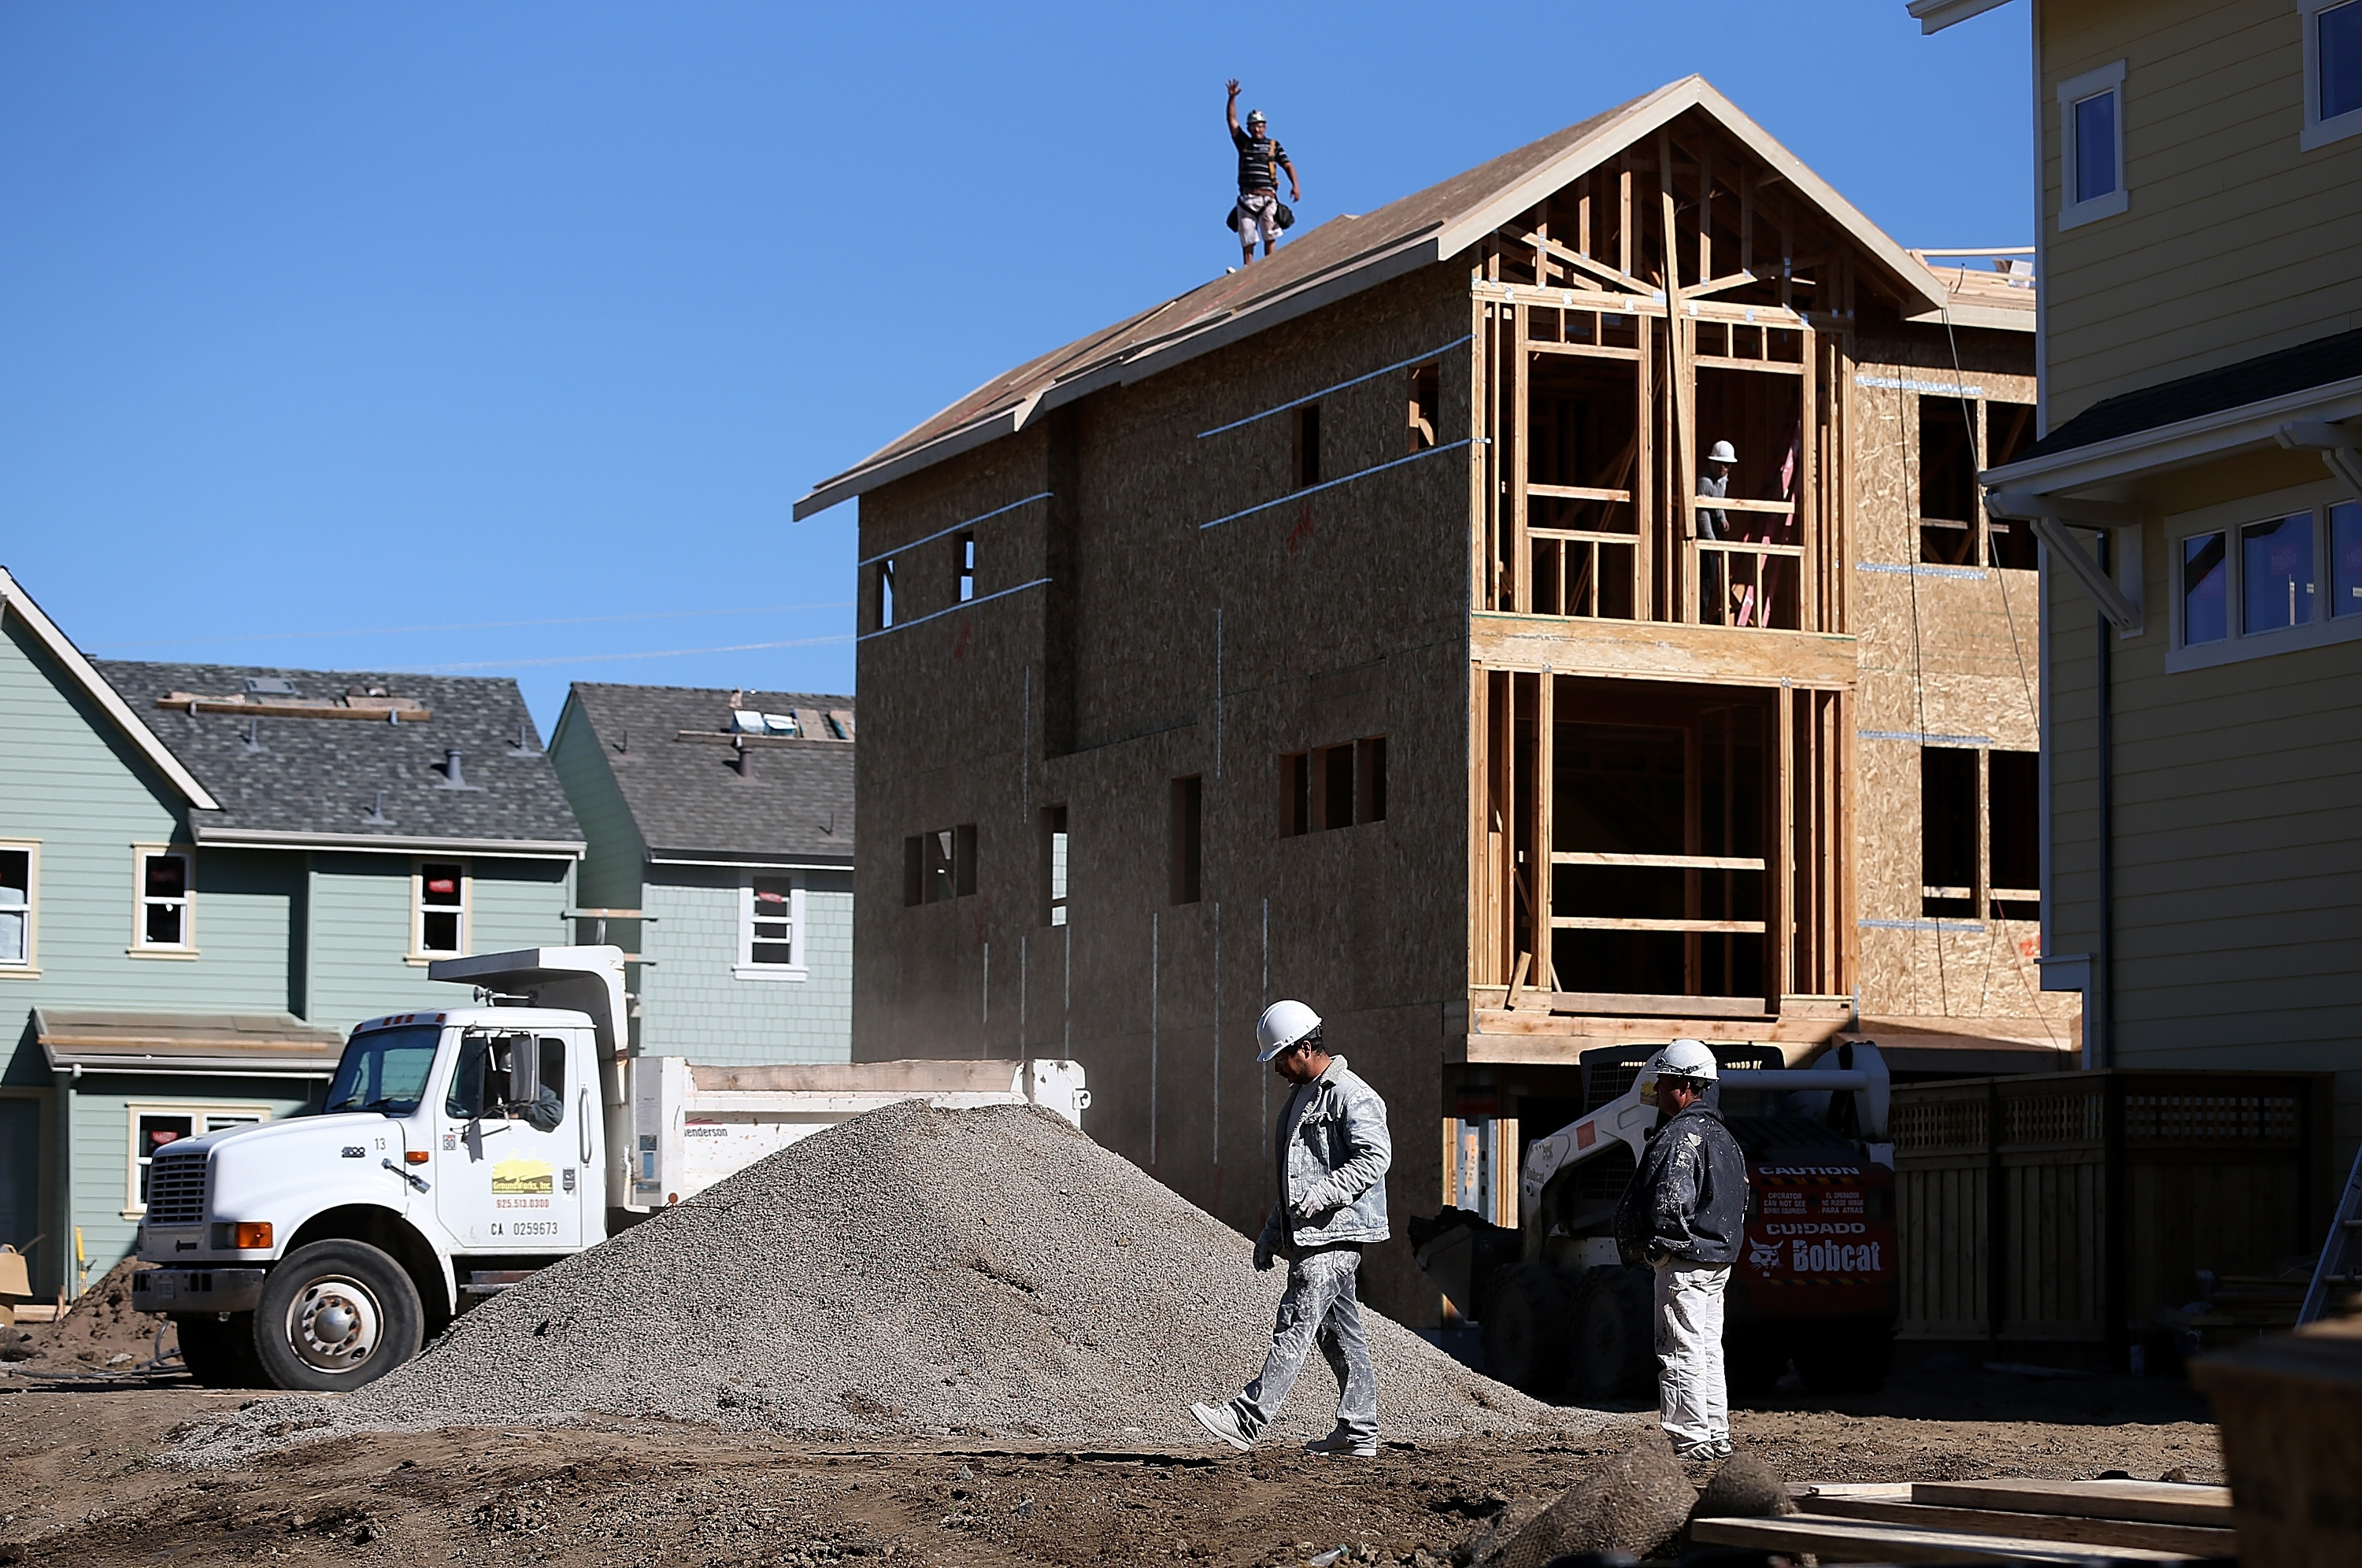 A new is under construction at a housing development on April 16, 2013 in San Mateo, California. (Photo by Justin Sullivan/Getty Images)